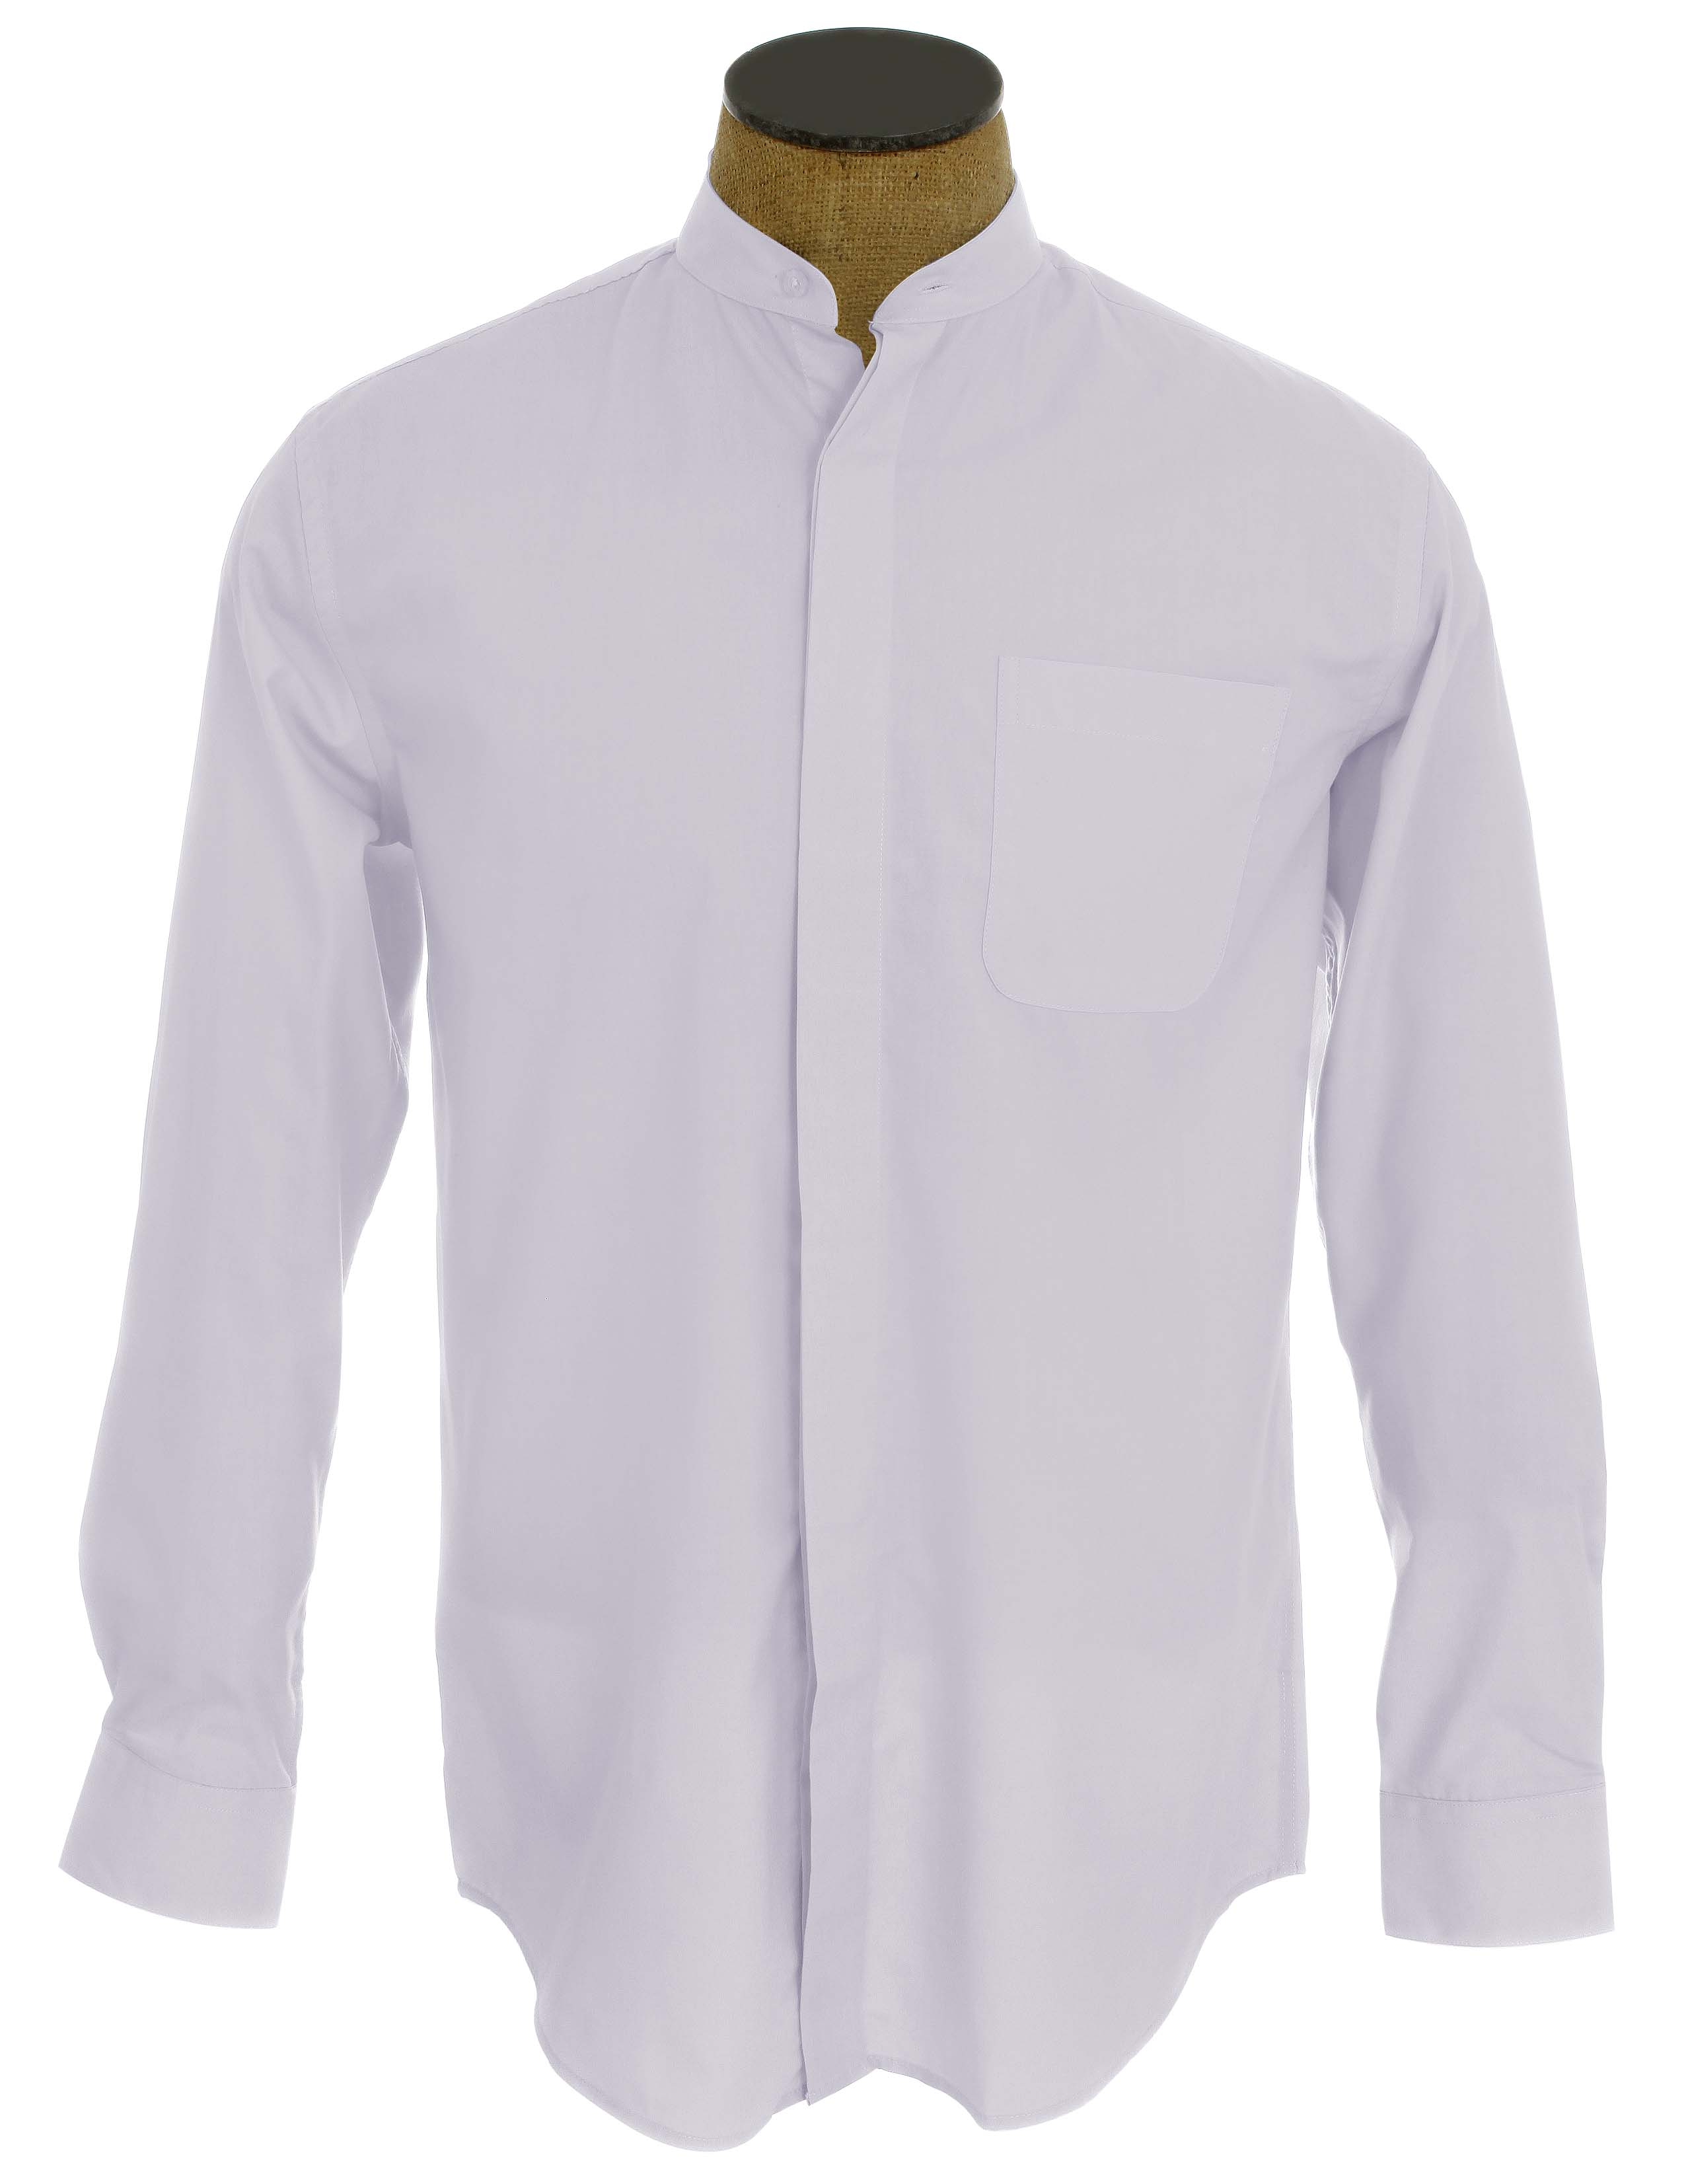 A beautiful and classic button front shirt, great for all ajaykumarchejarla.ml it up with khaki's and a blazer, or wear it with jeans. % cotton, this shirt is durable, and comfortable, making it a perfect layer all year.